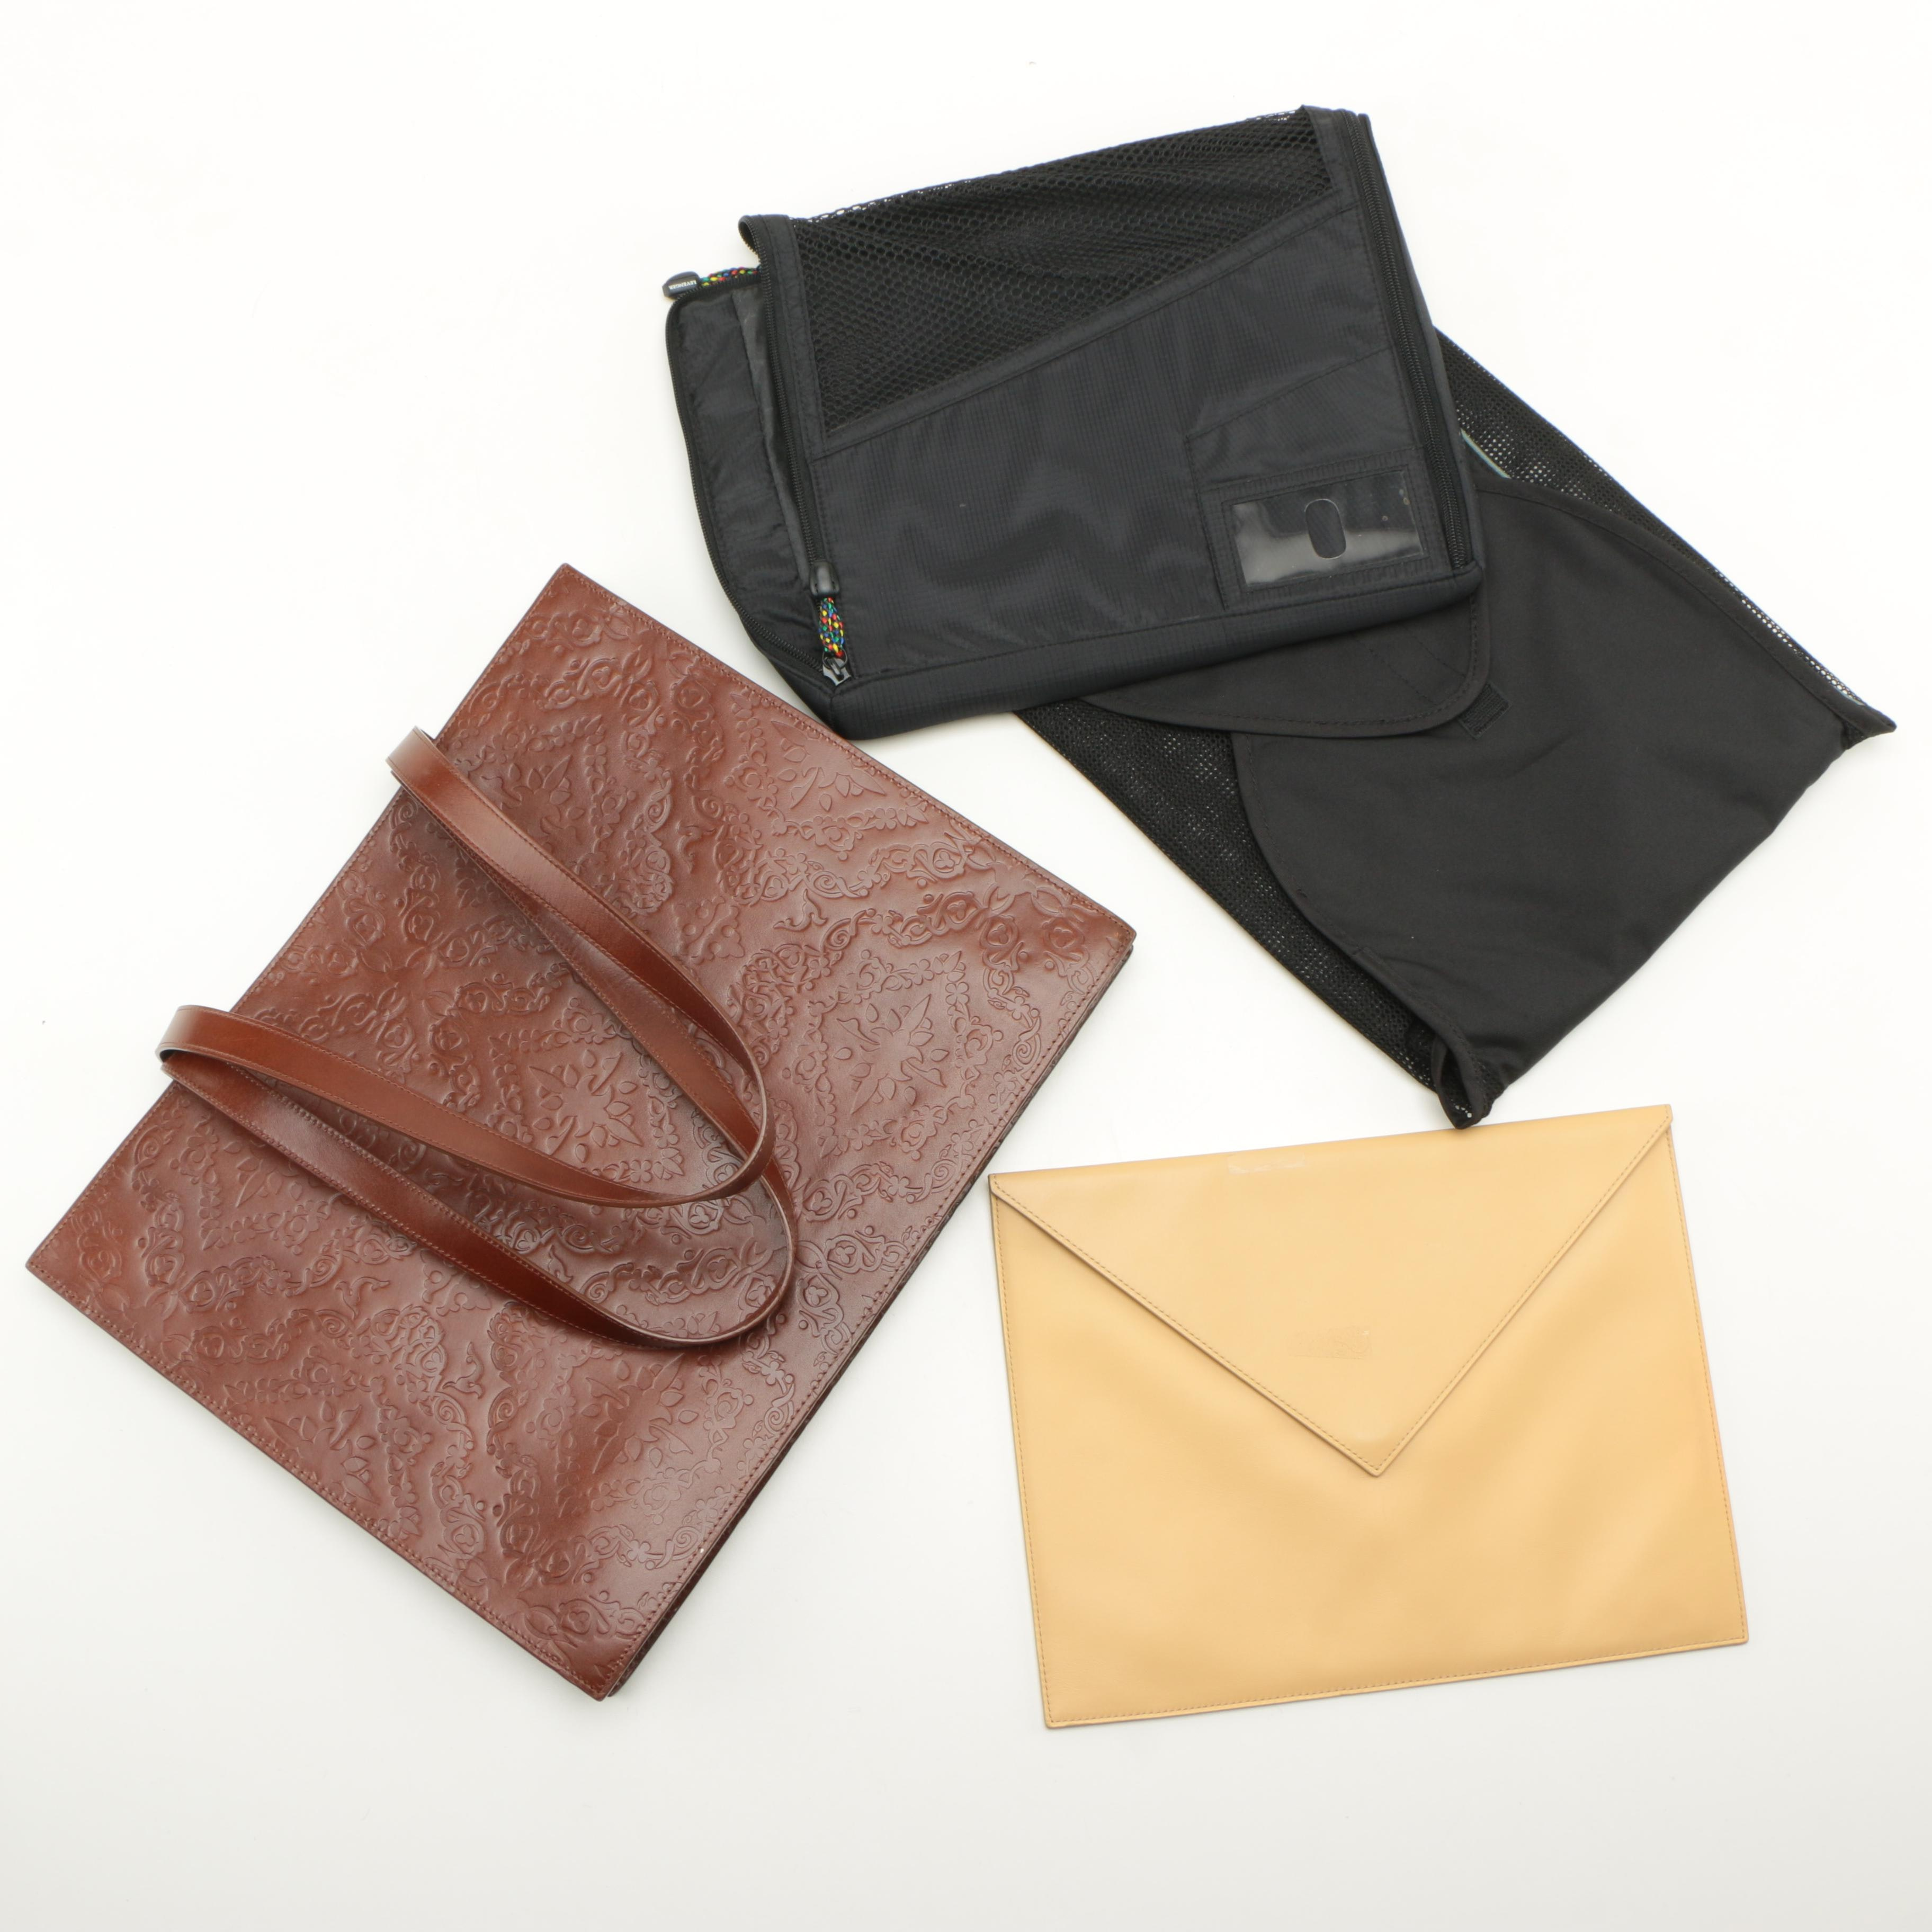 Assorted Travel and Accessory Bags